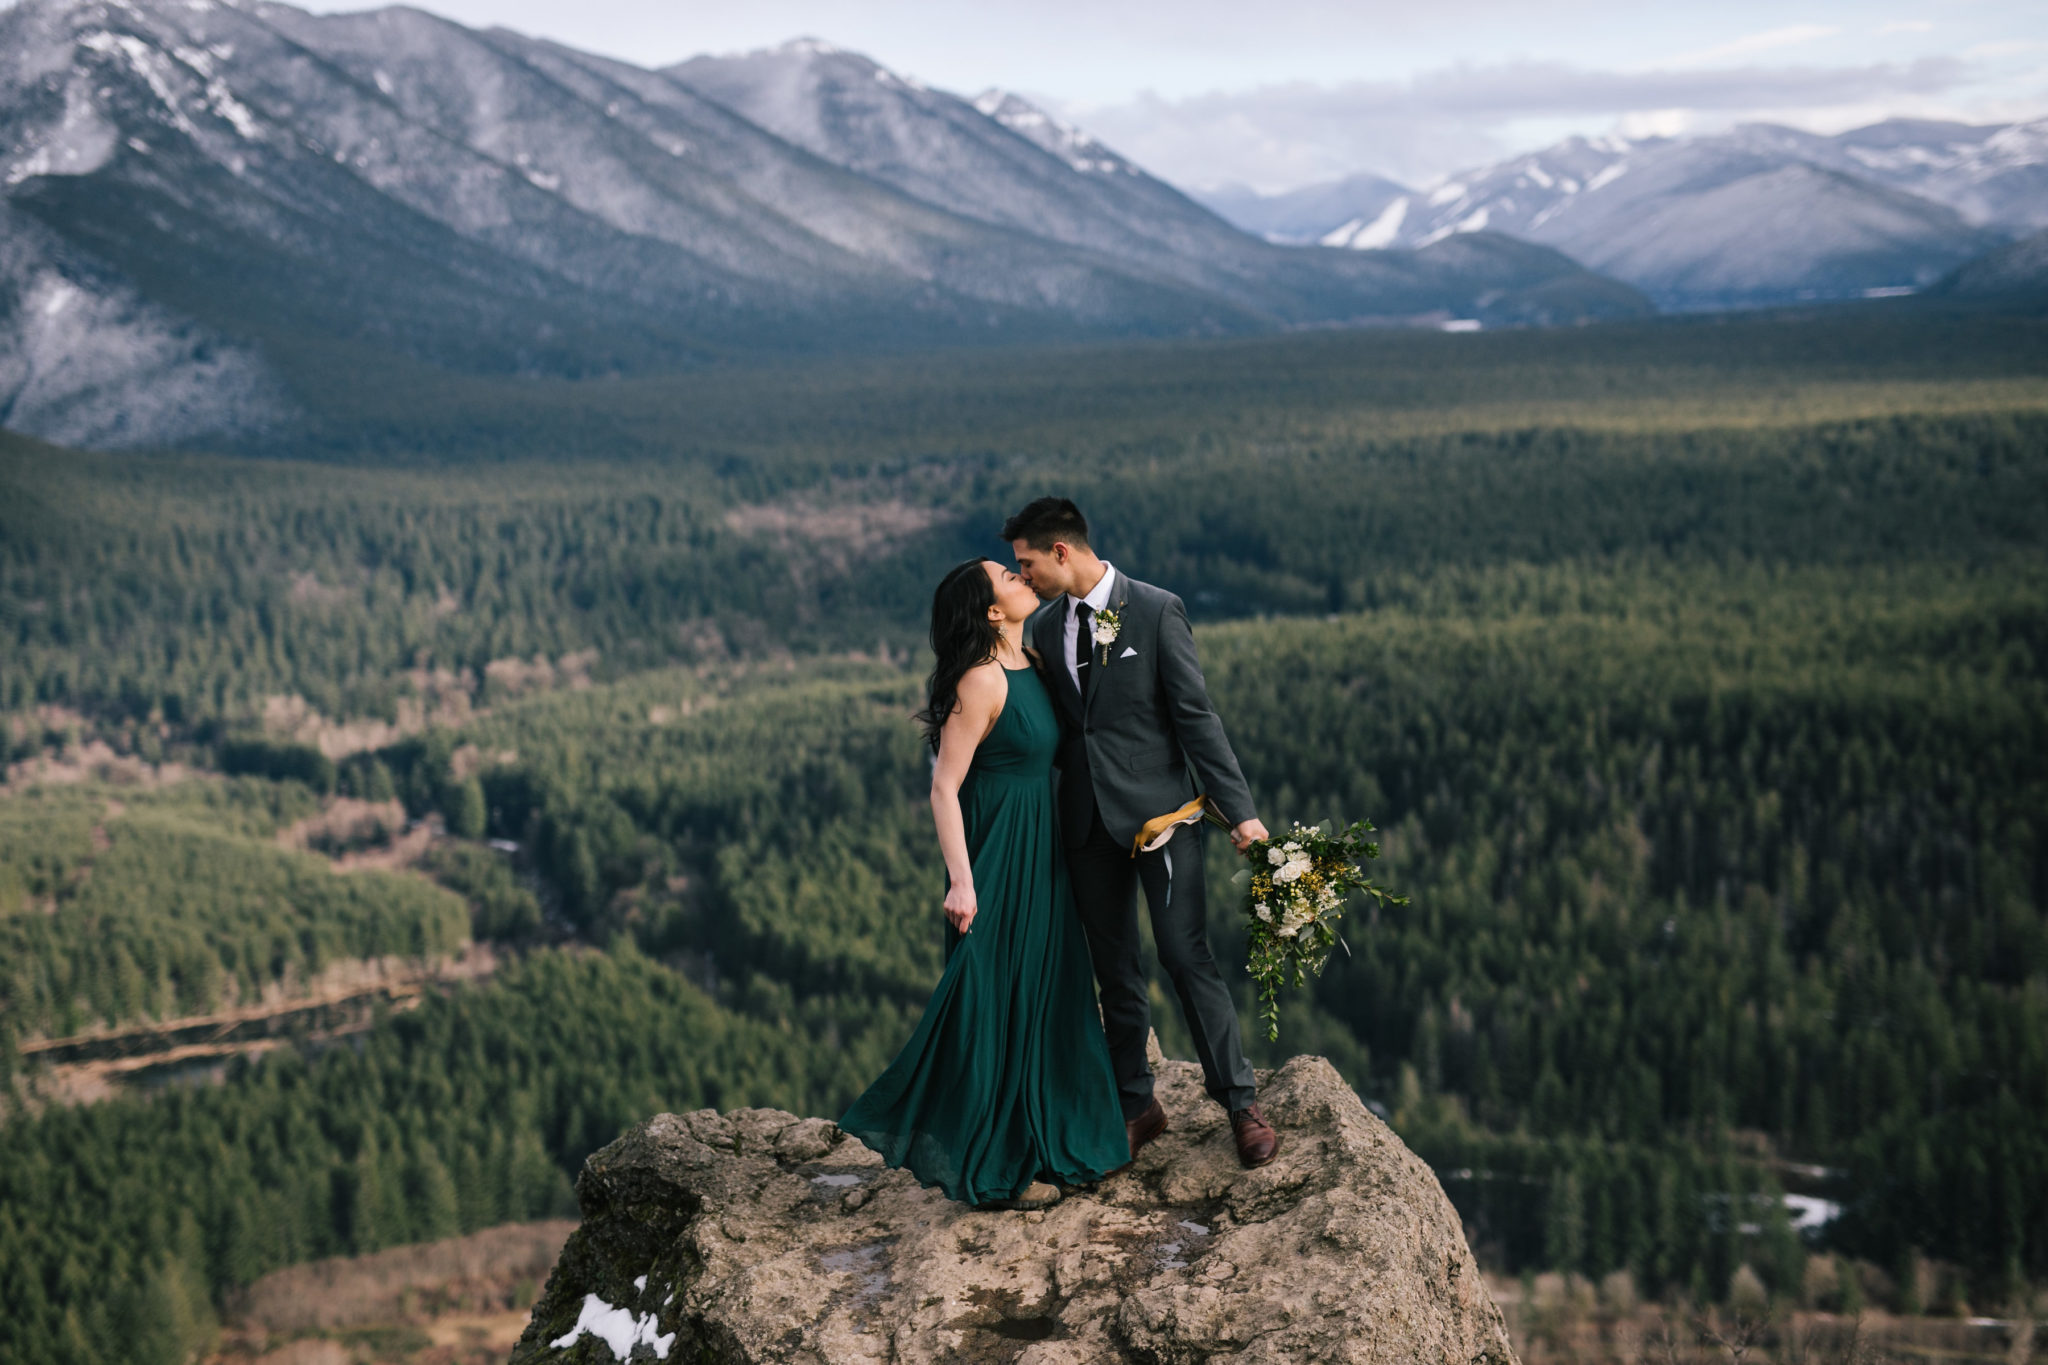 Elopements with Erika of The Greatest Adventure, wedding planning podcast, Rattlesnake ledge, couple